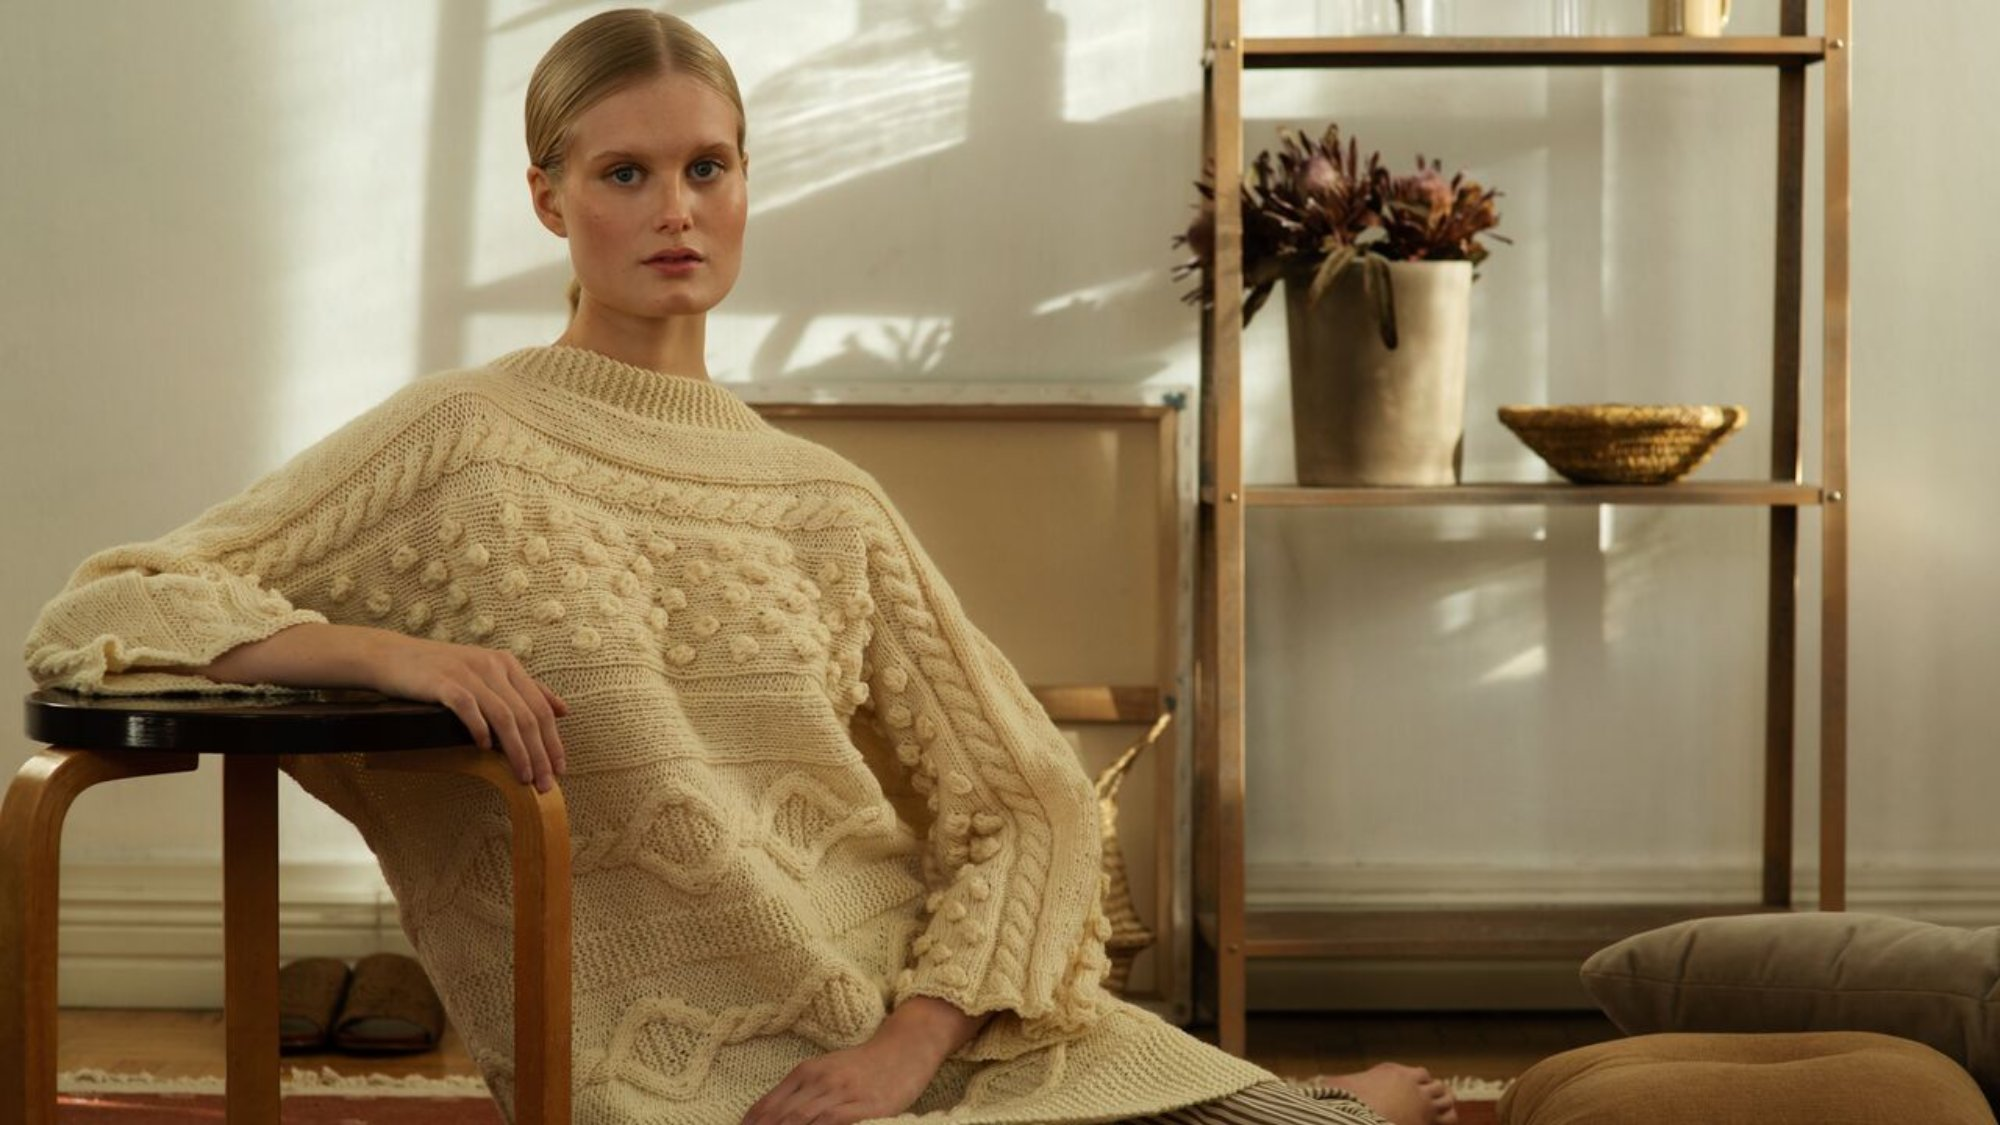 woman wearing a knitted pullover